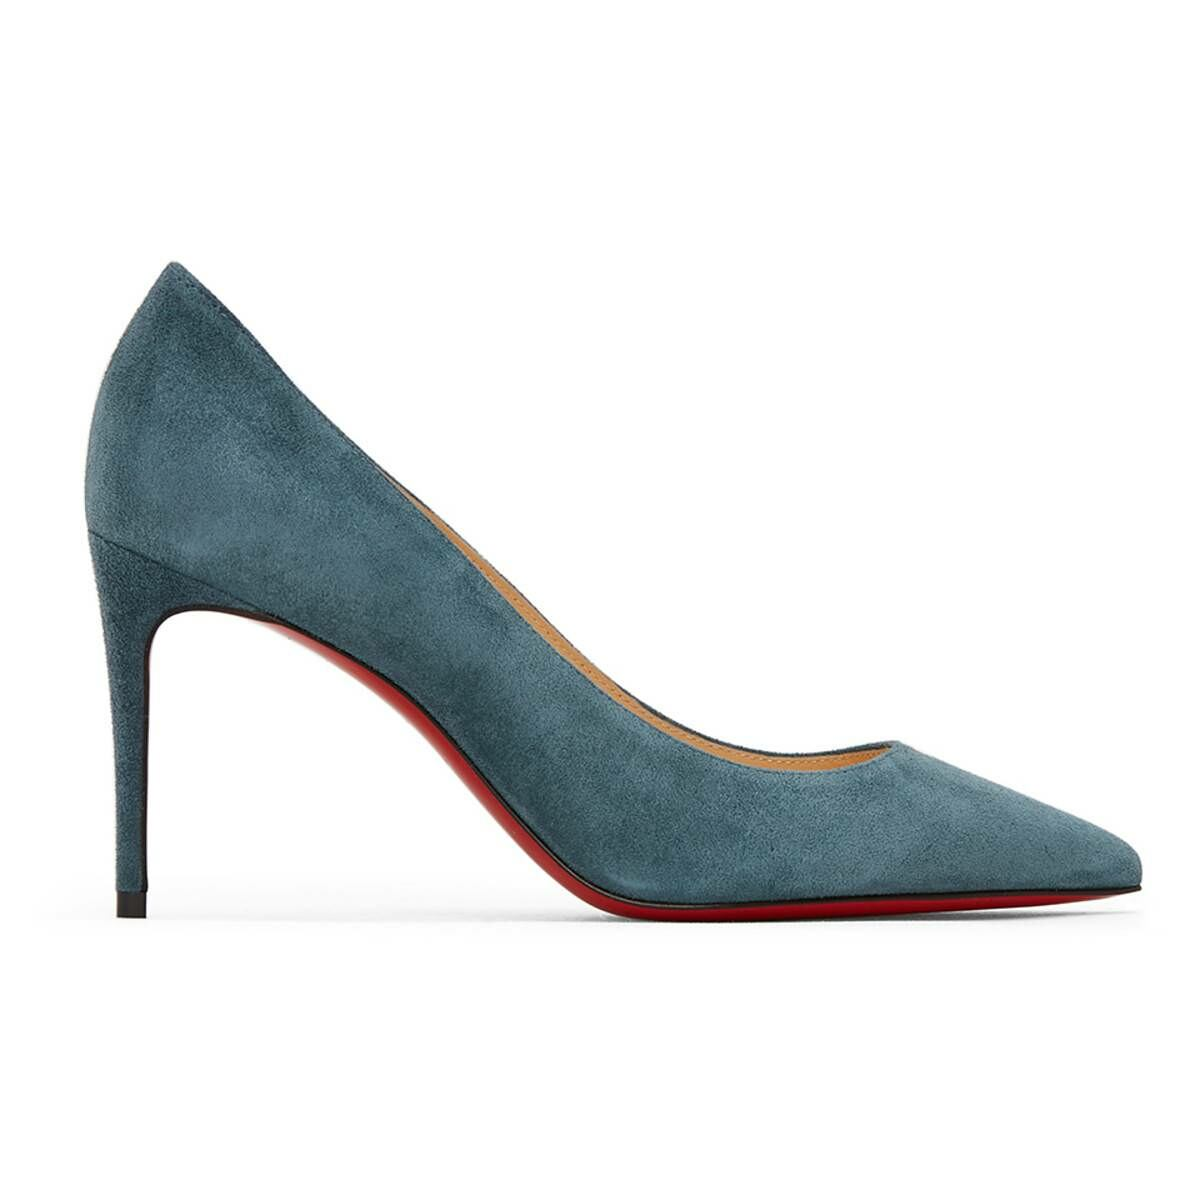 Christian Louboutin Blue Suede Kate 85 Heels Ssense USA WOMEN Women SHOES Womens HIGH HEELS